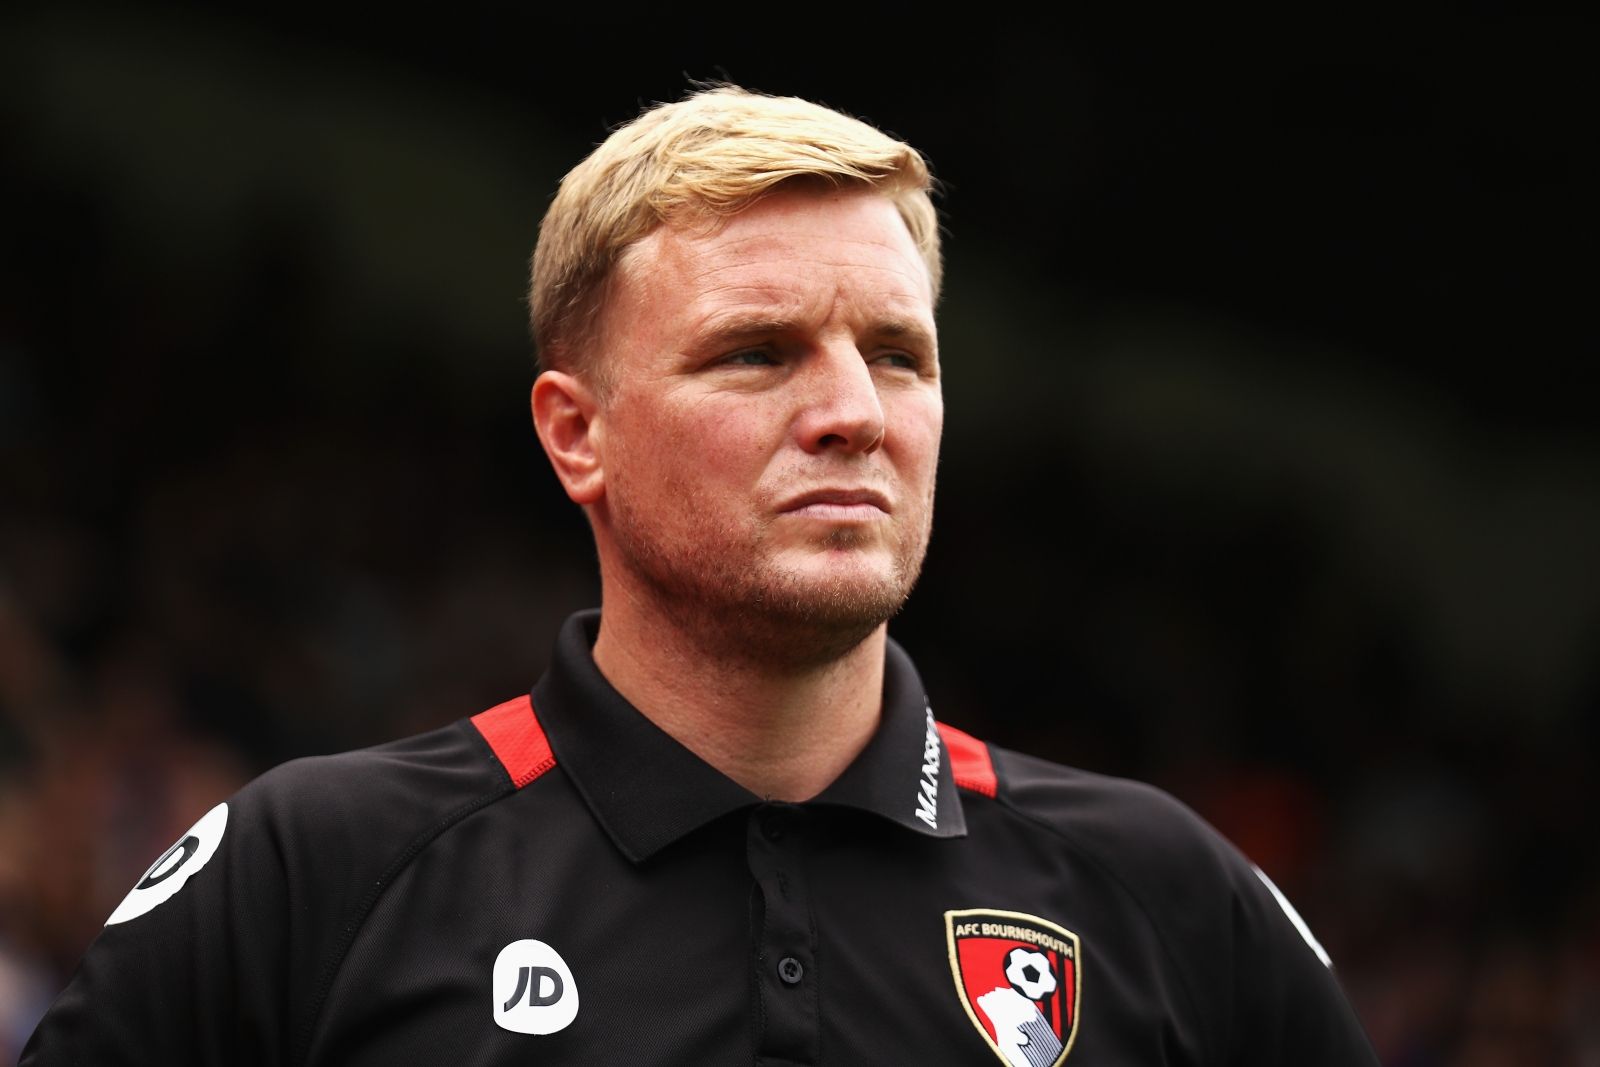 Eddie Howe   All the action from the casino floor: news, views and more